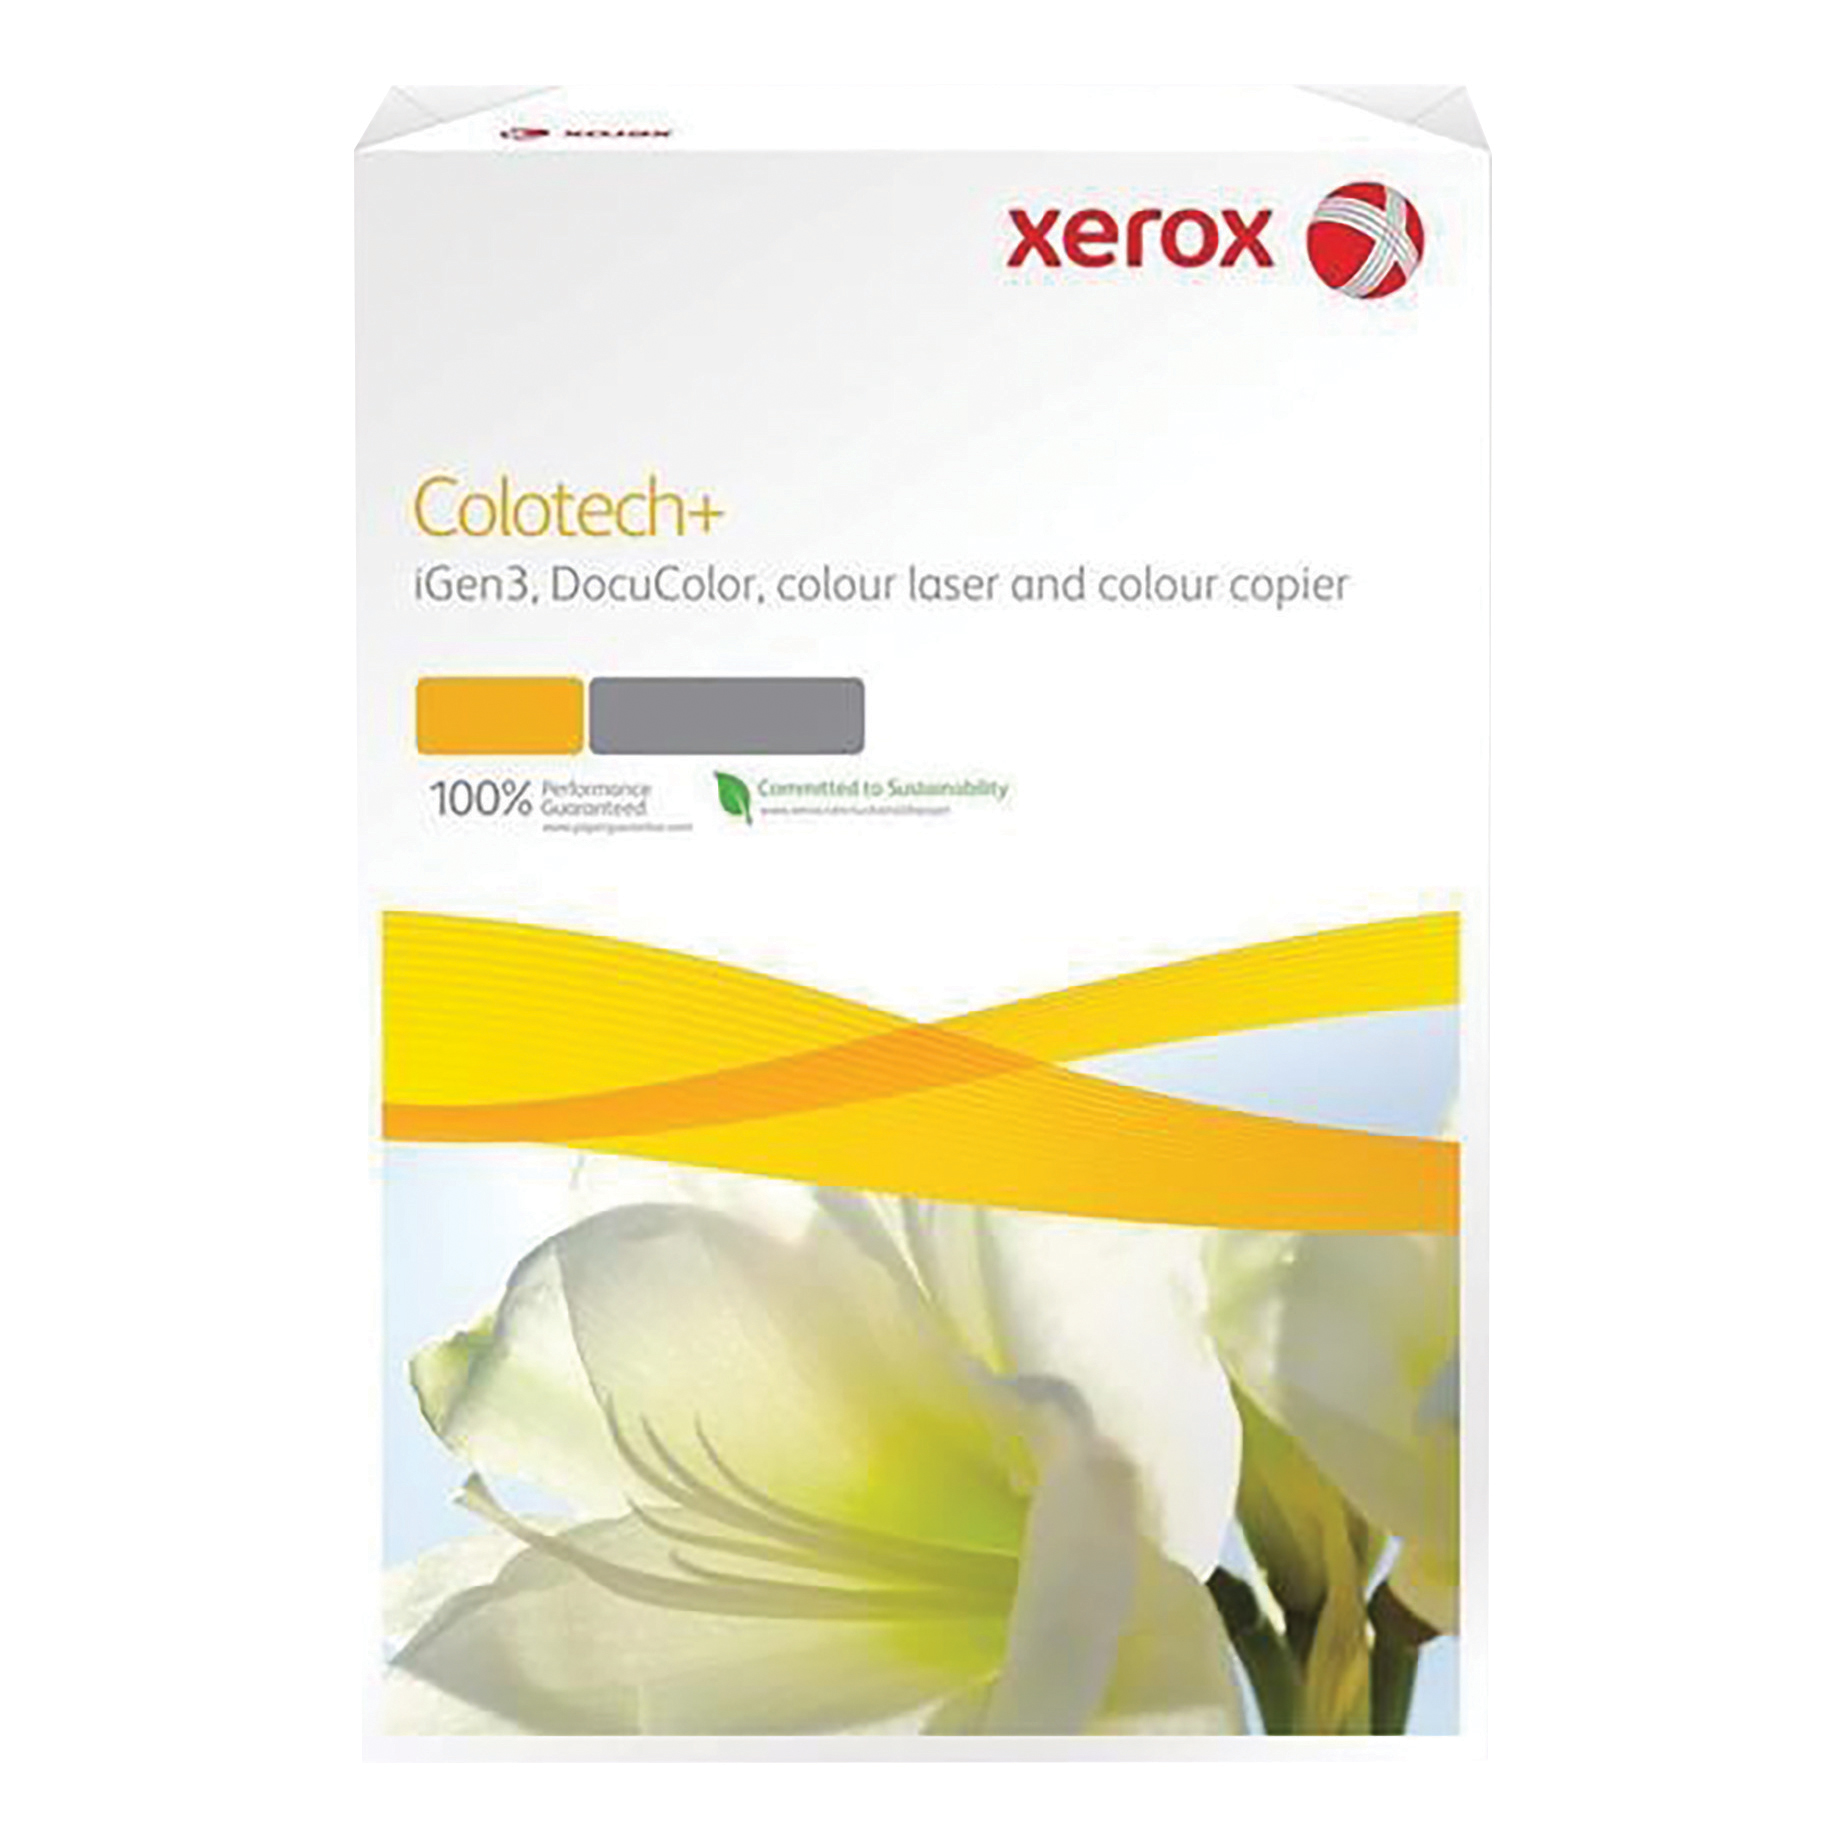 Xerox FSC Colotech+ Digital Colour Paper Prem Ream-Wrapped ColorLok  90gsm A3 White Ref 64488500 Sheets